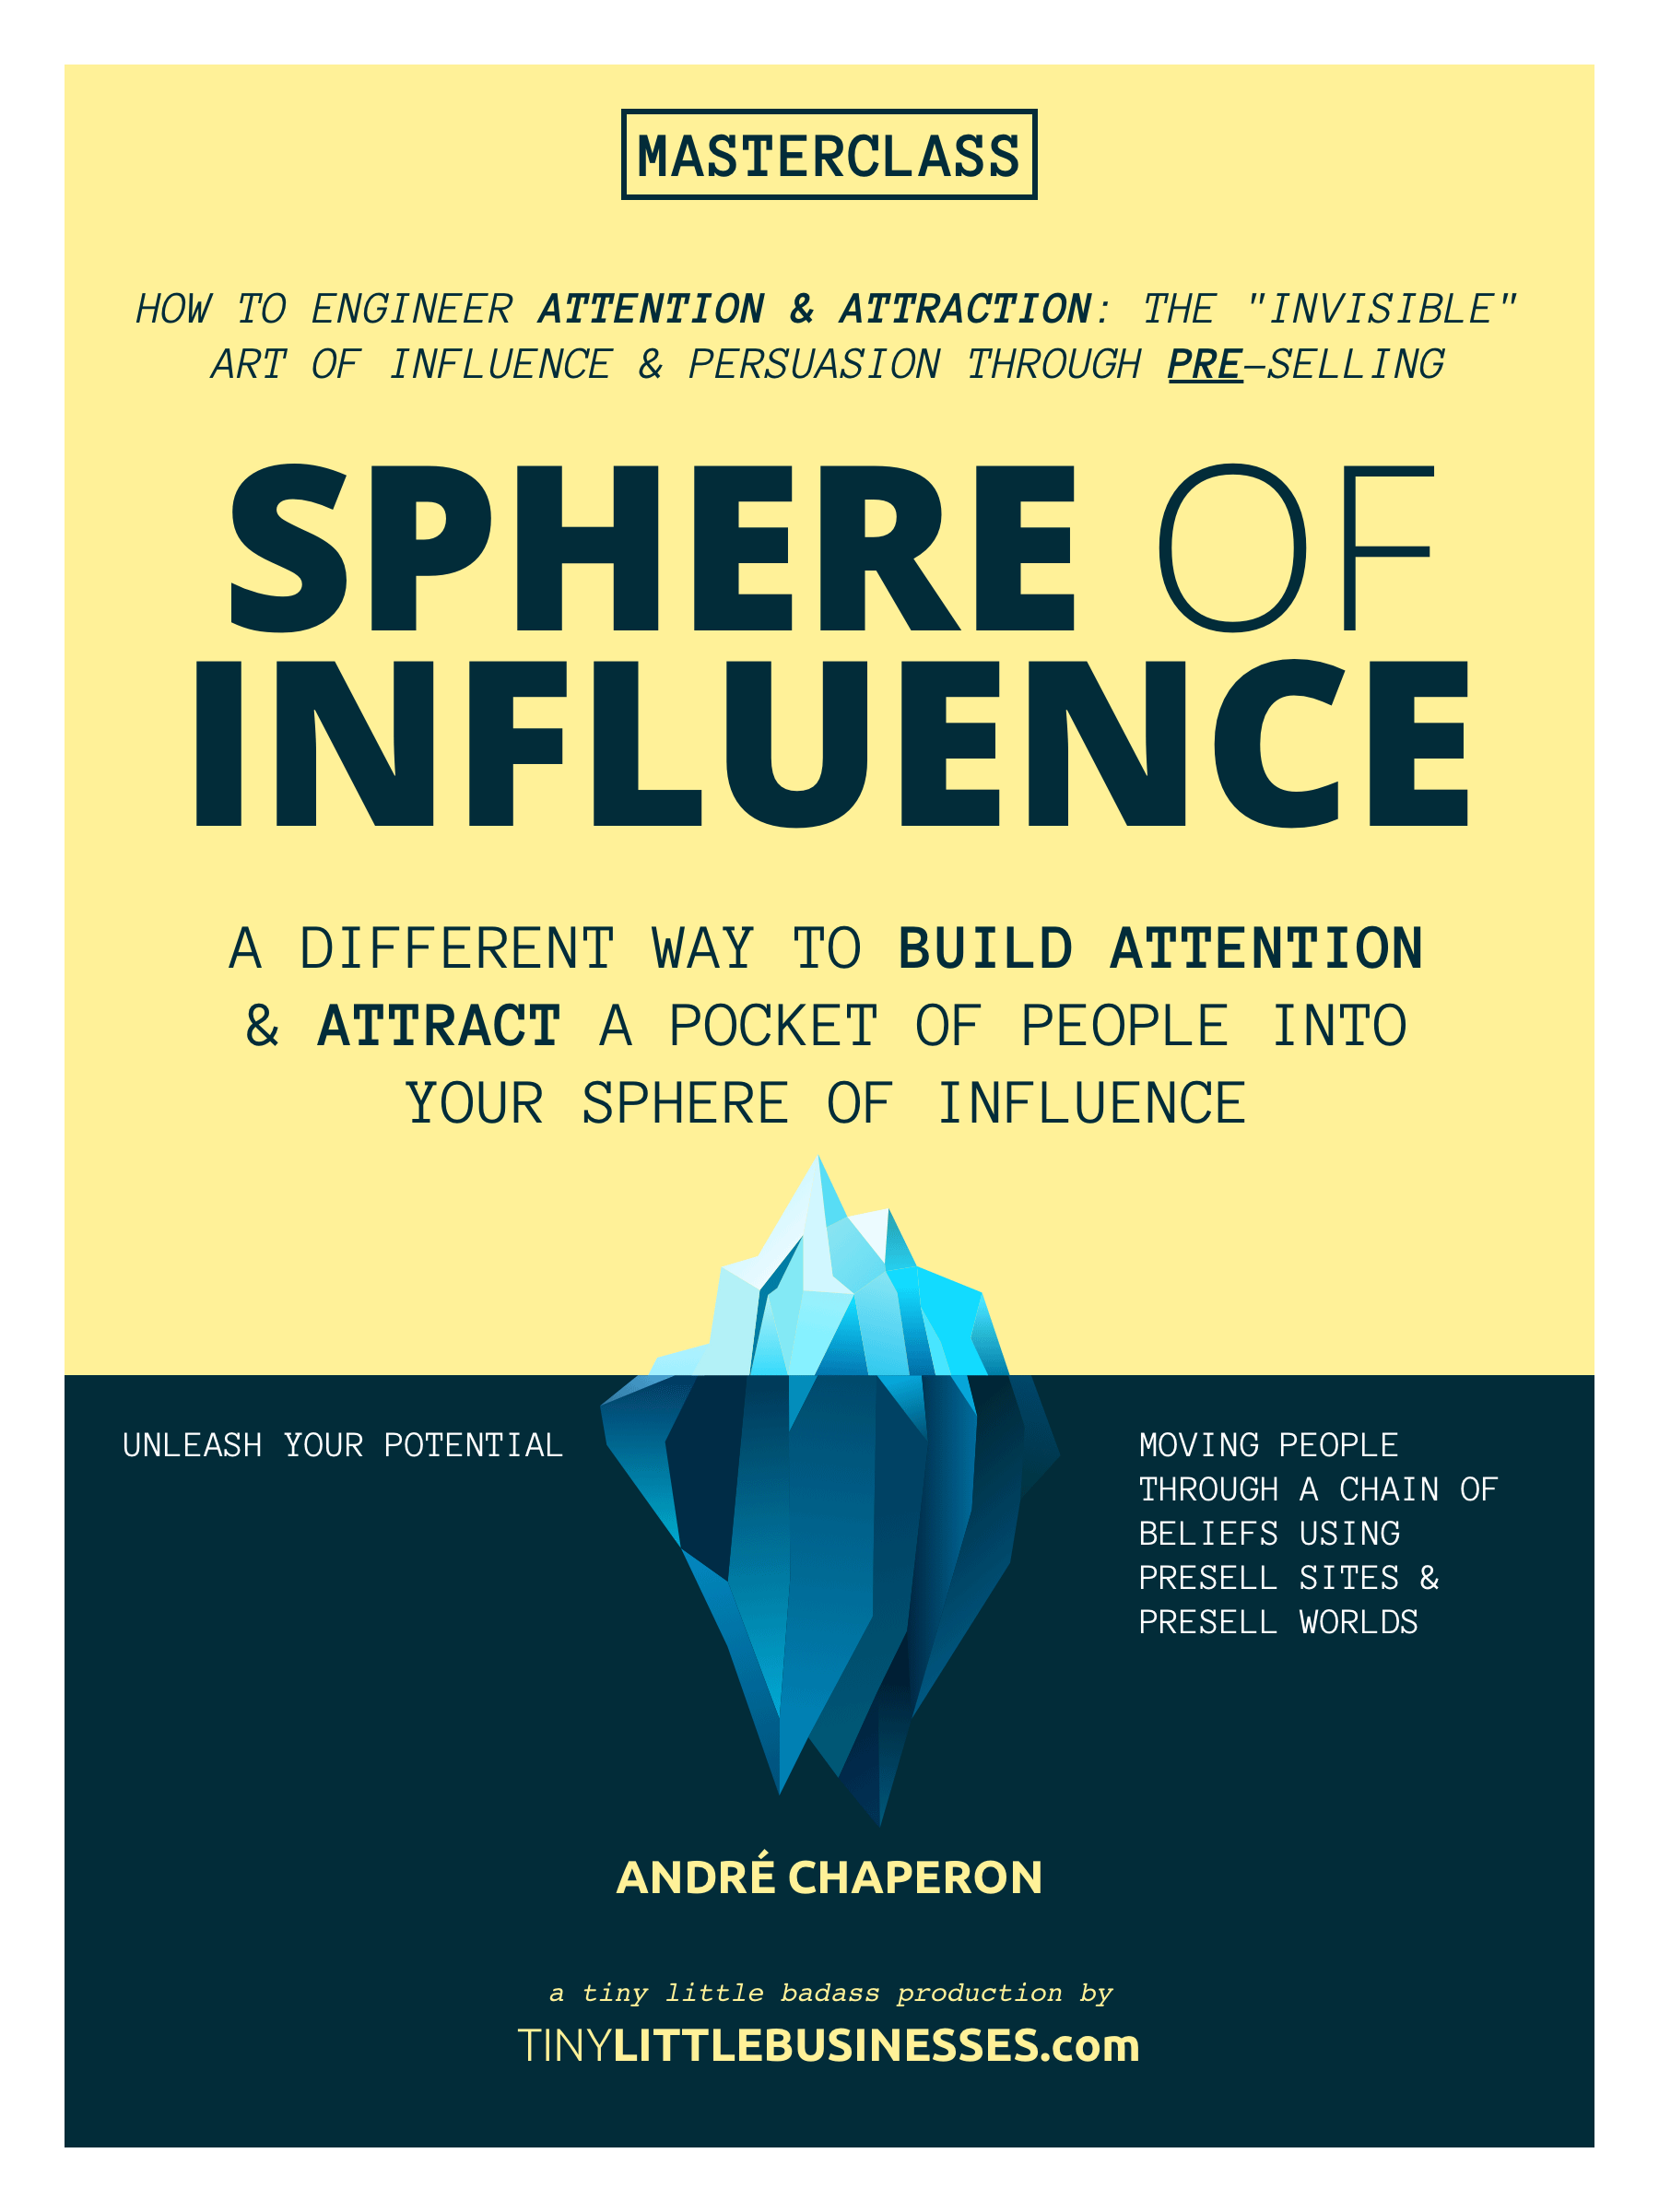 André Chaperon – Sphere of Influence